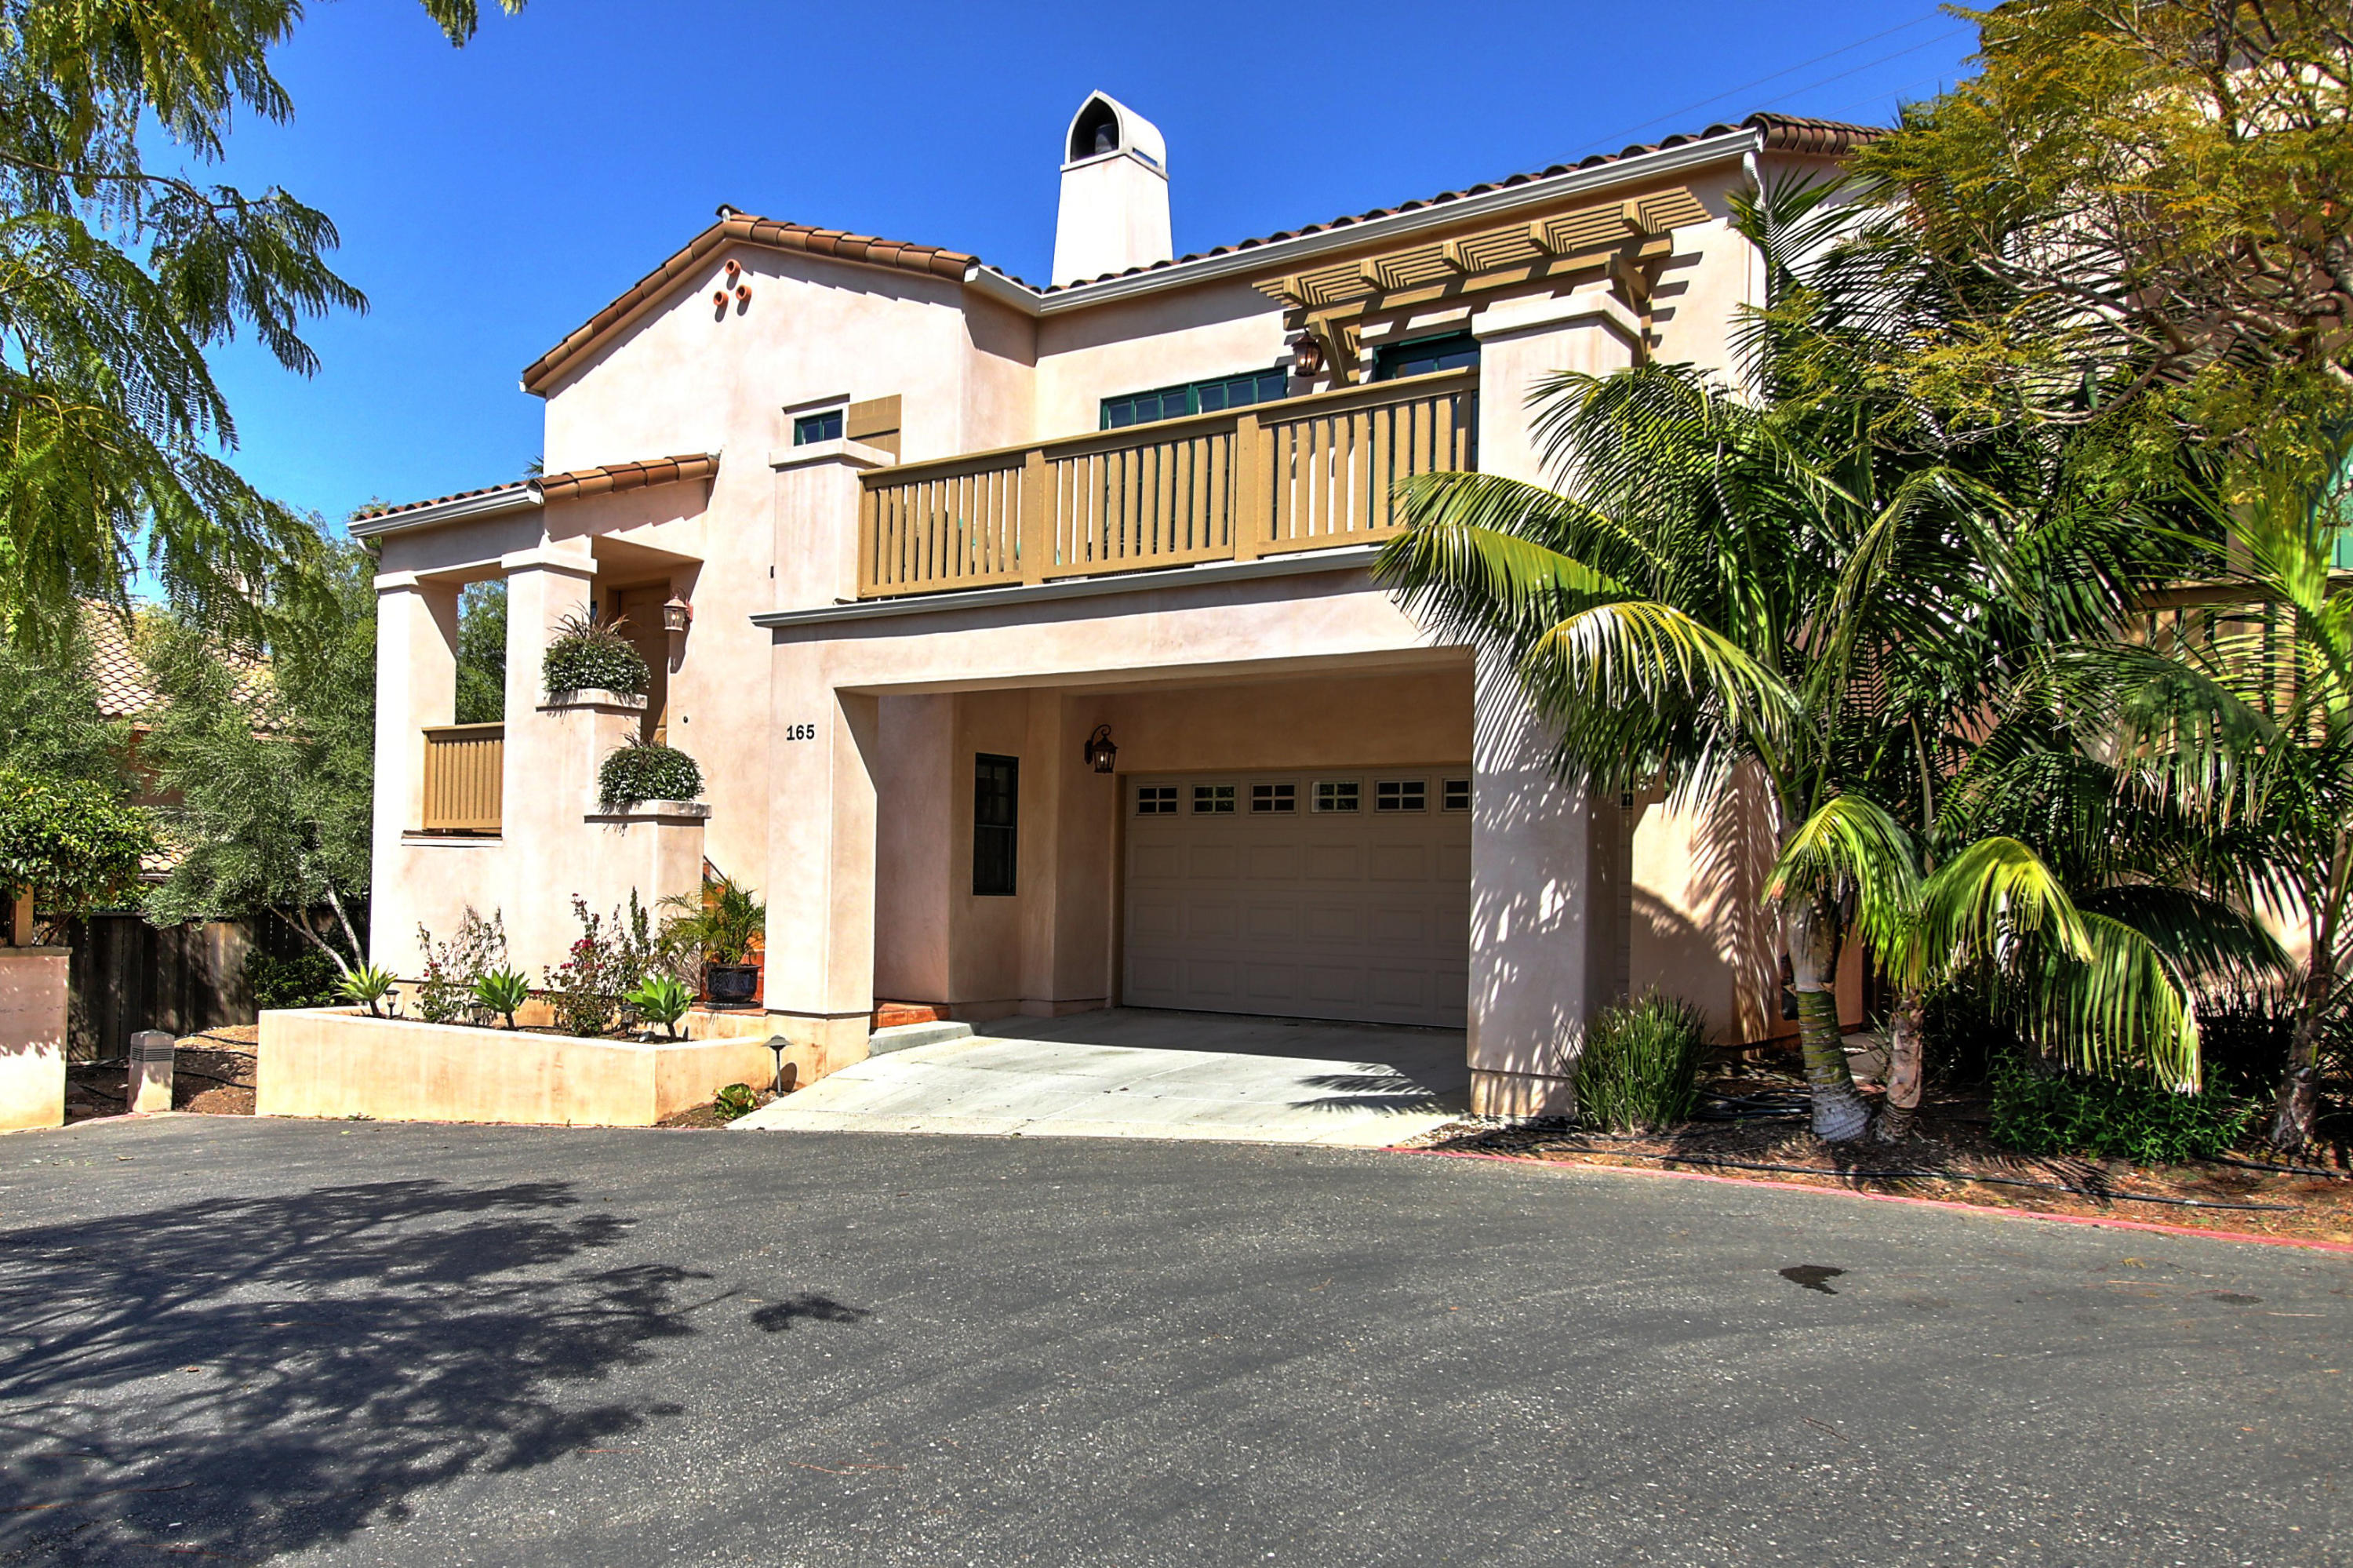 Property photo for 165 Via Lee Santa Barbara, California 93111 - 17-1032